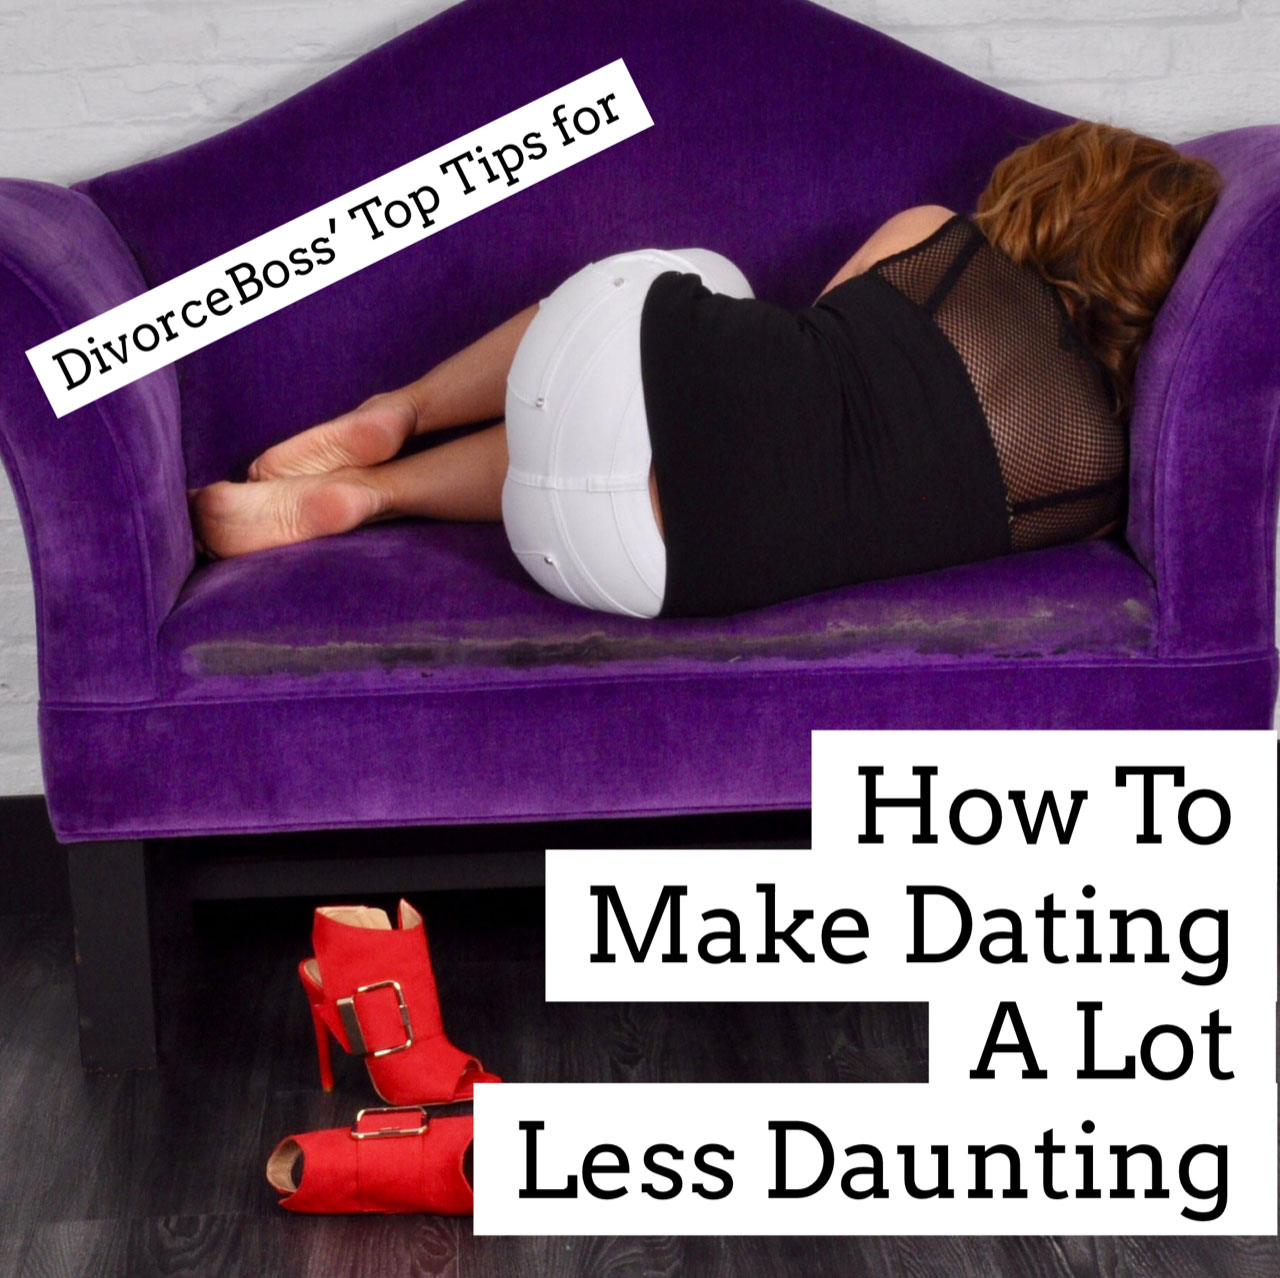 How to Make Dating a lot less daunting